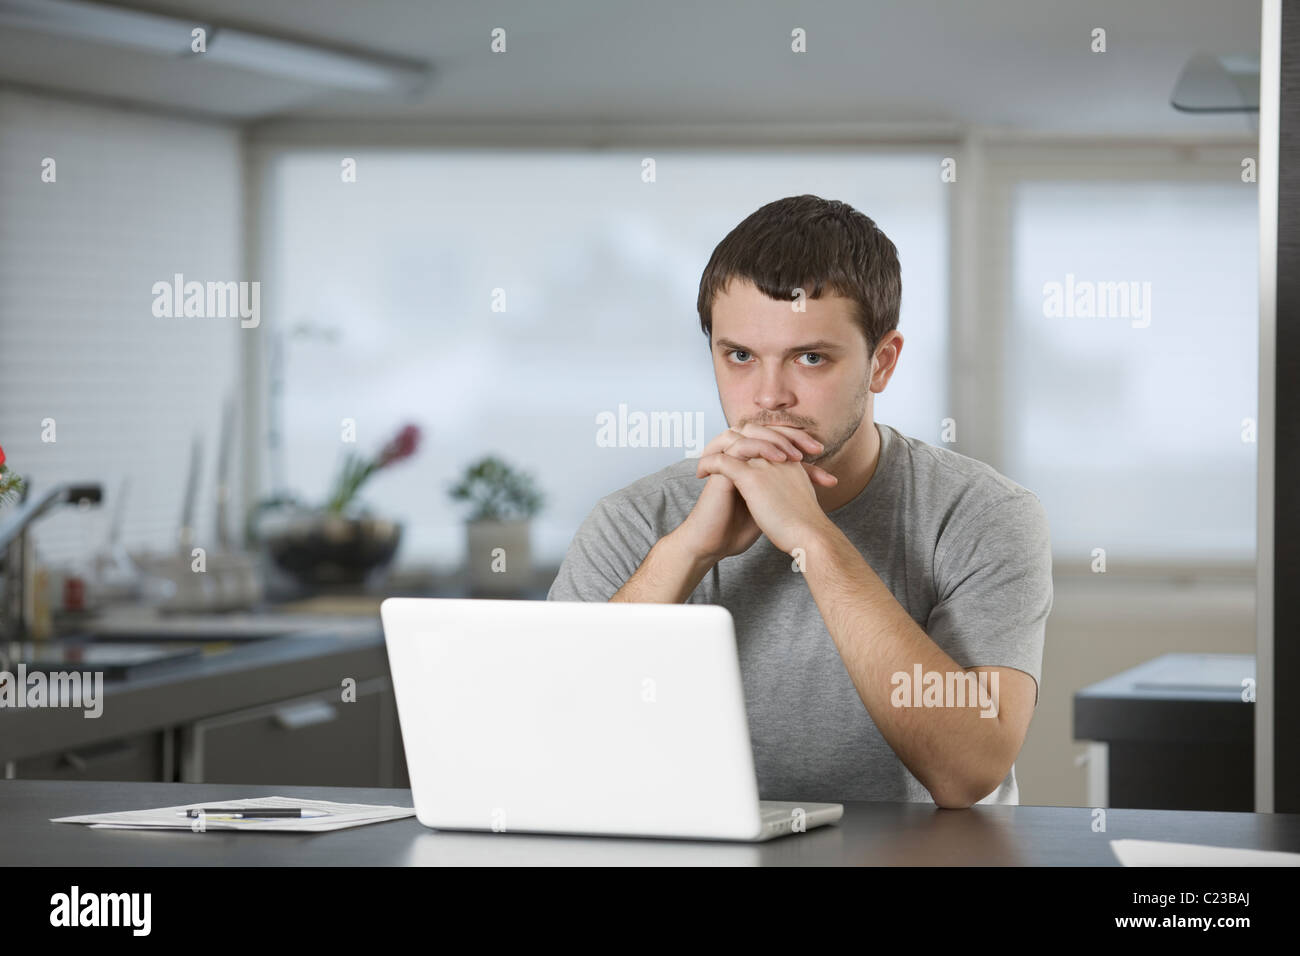 Young man sits leaning on elbows at laptop in kitchen - Stock Image